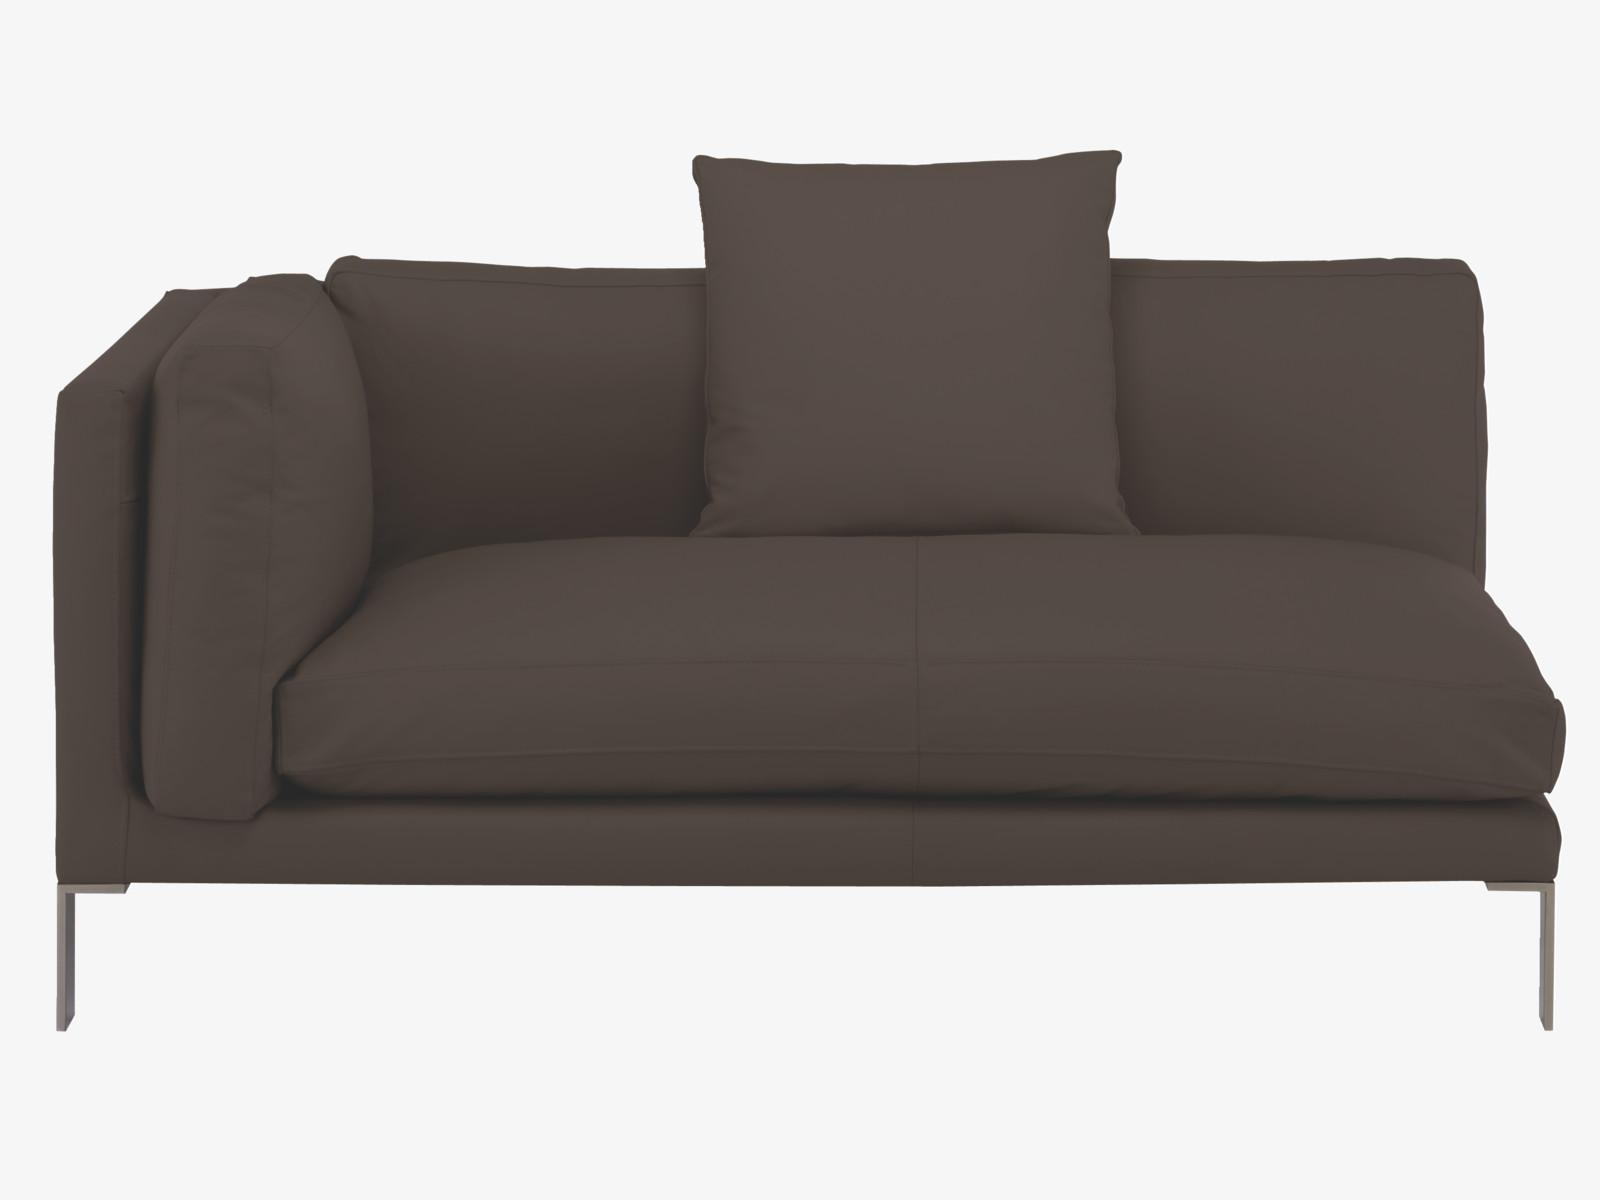 Small Modular Sofa With Ideas Hd Images 32255 | Kengire Within Small Modular Sofas (View 3 of 20)